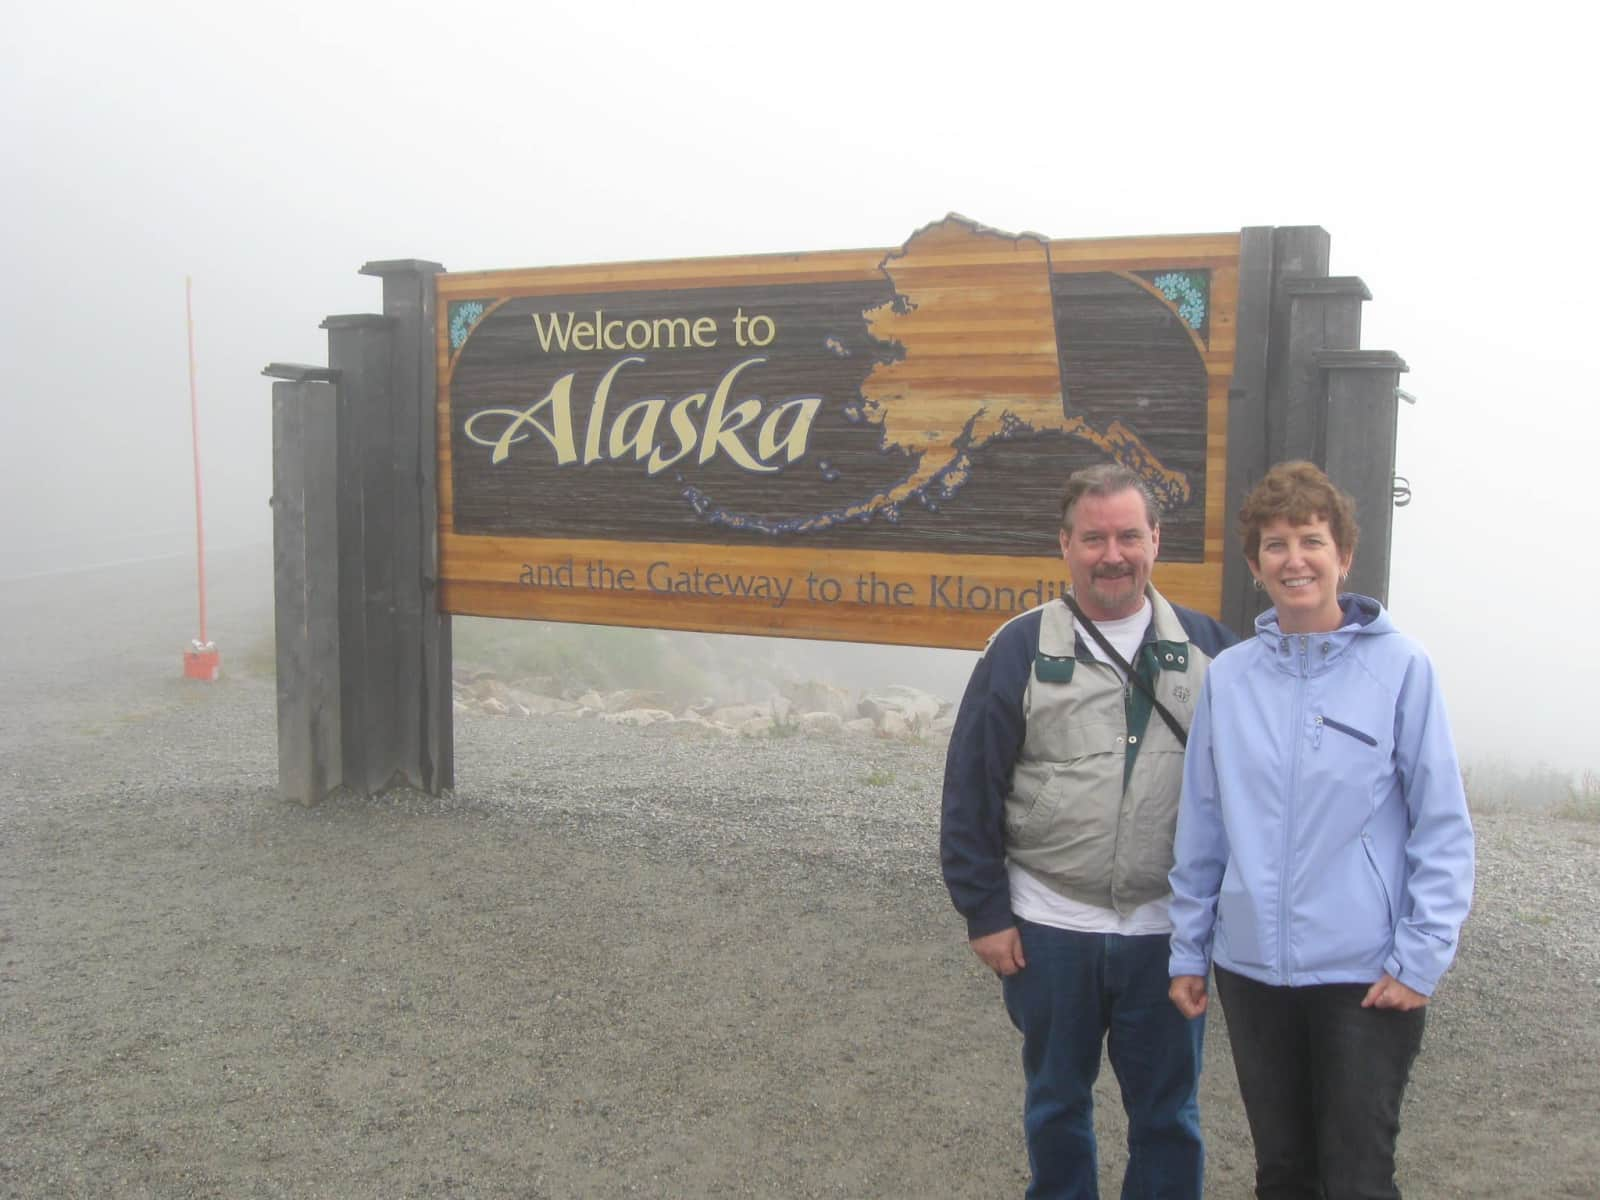 Sue & Rich from Boise, Idaho, United States